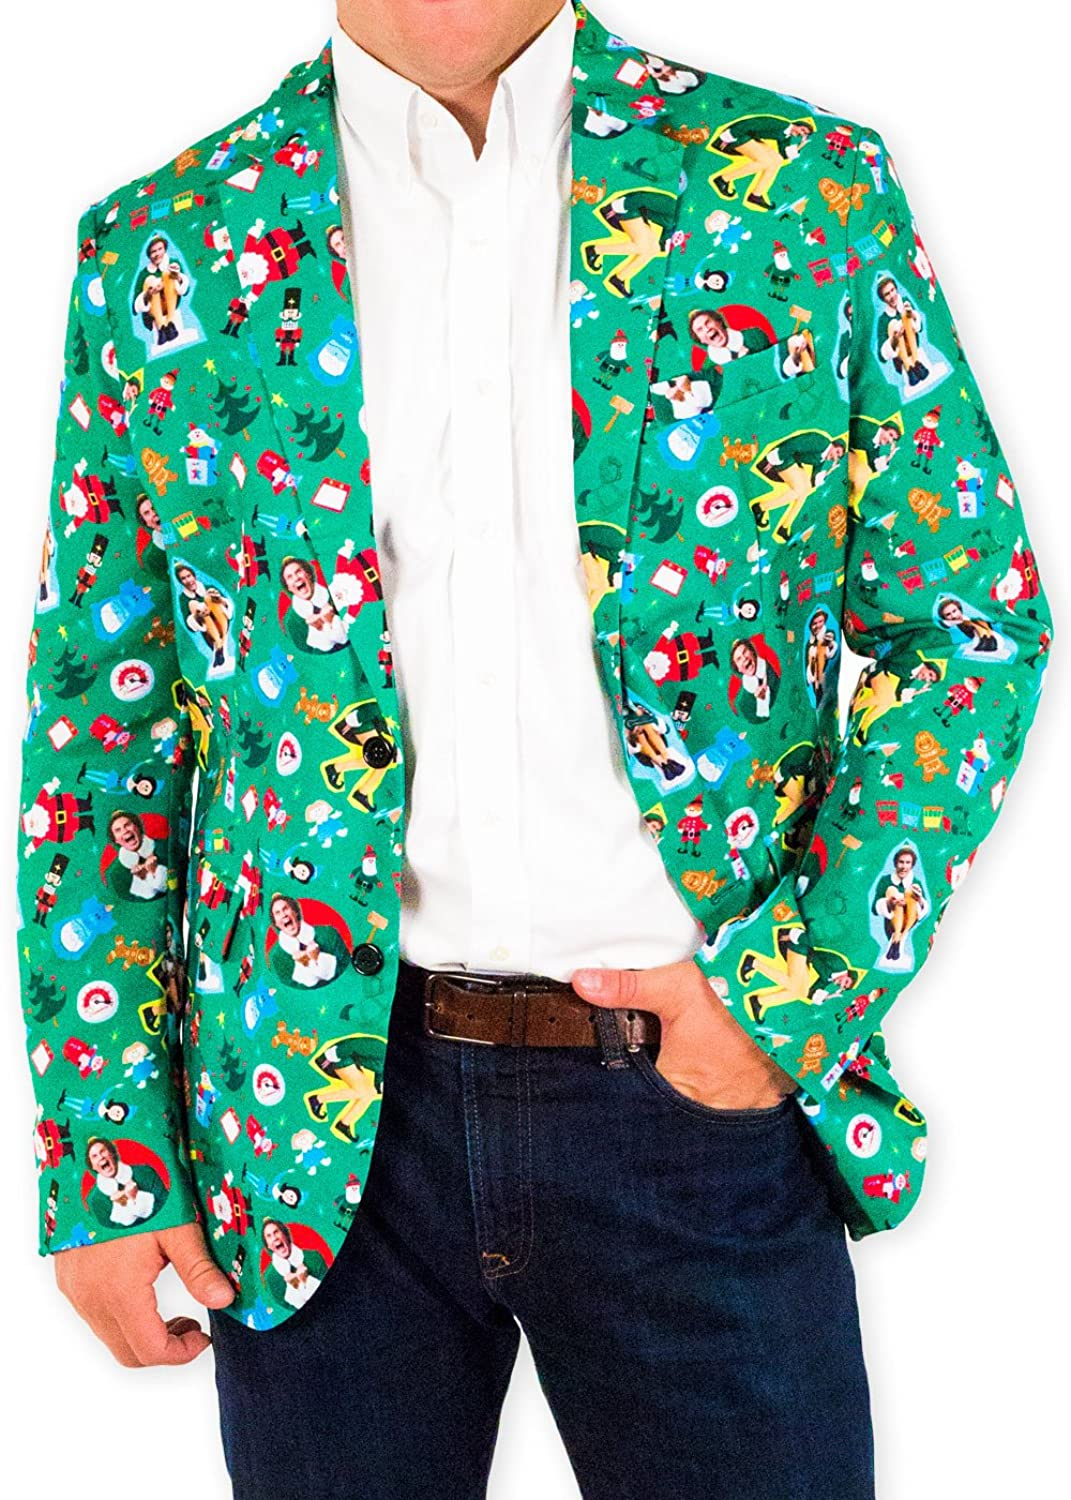 Festified Men\'s The Festive Elf Holiday Christmas Suit Coat and Tie ...